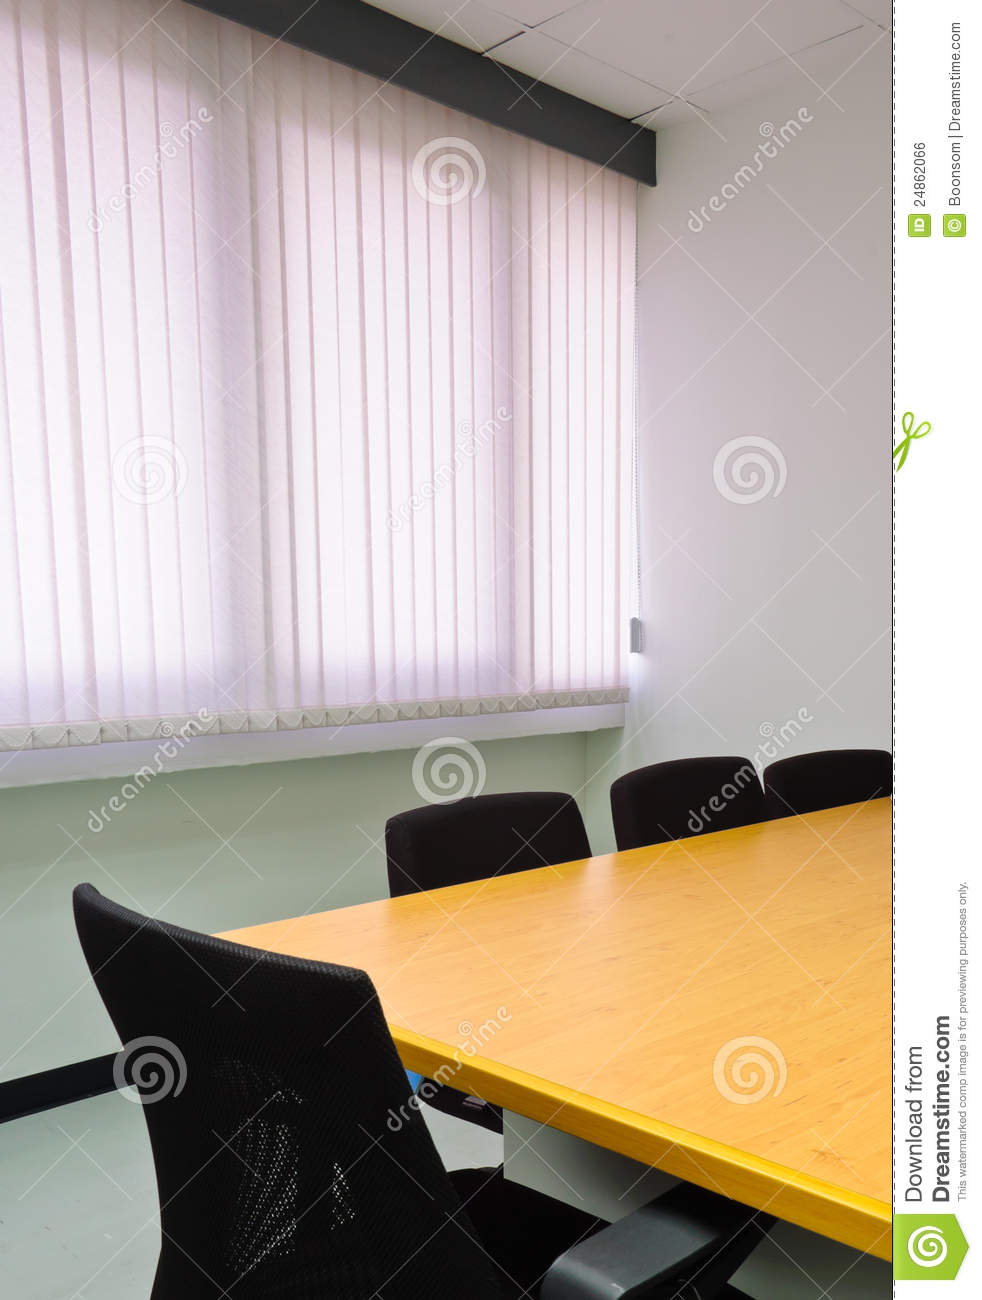 Small meeting room against window blinds